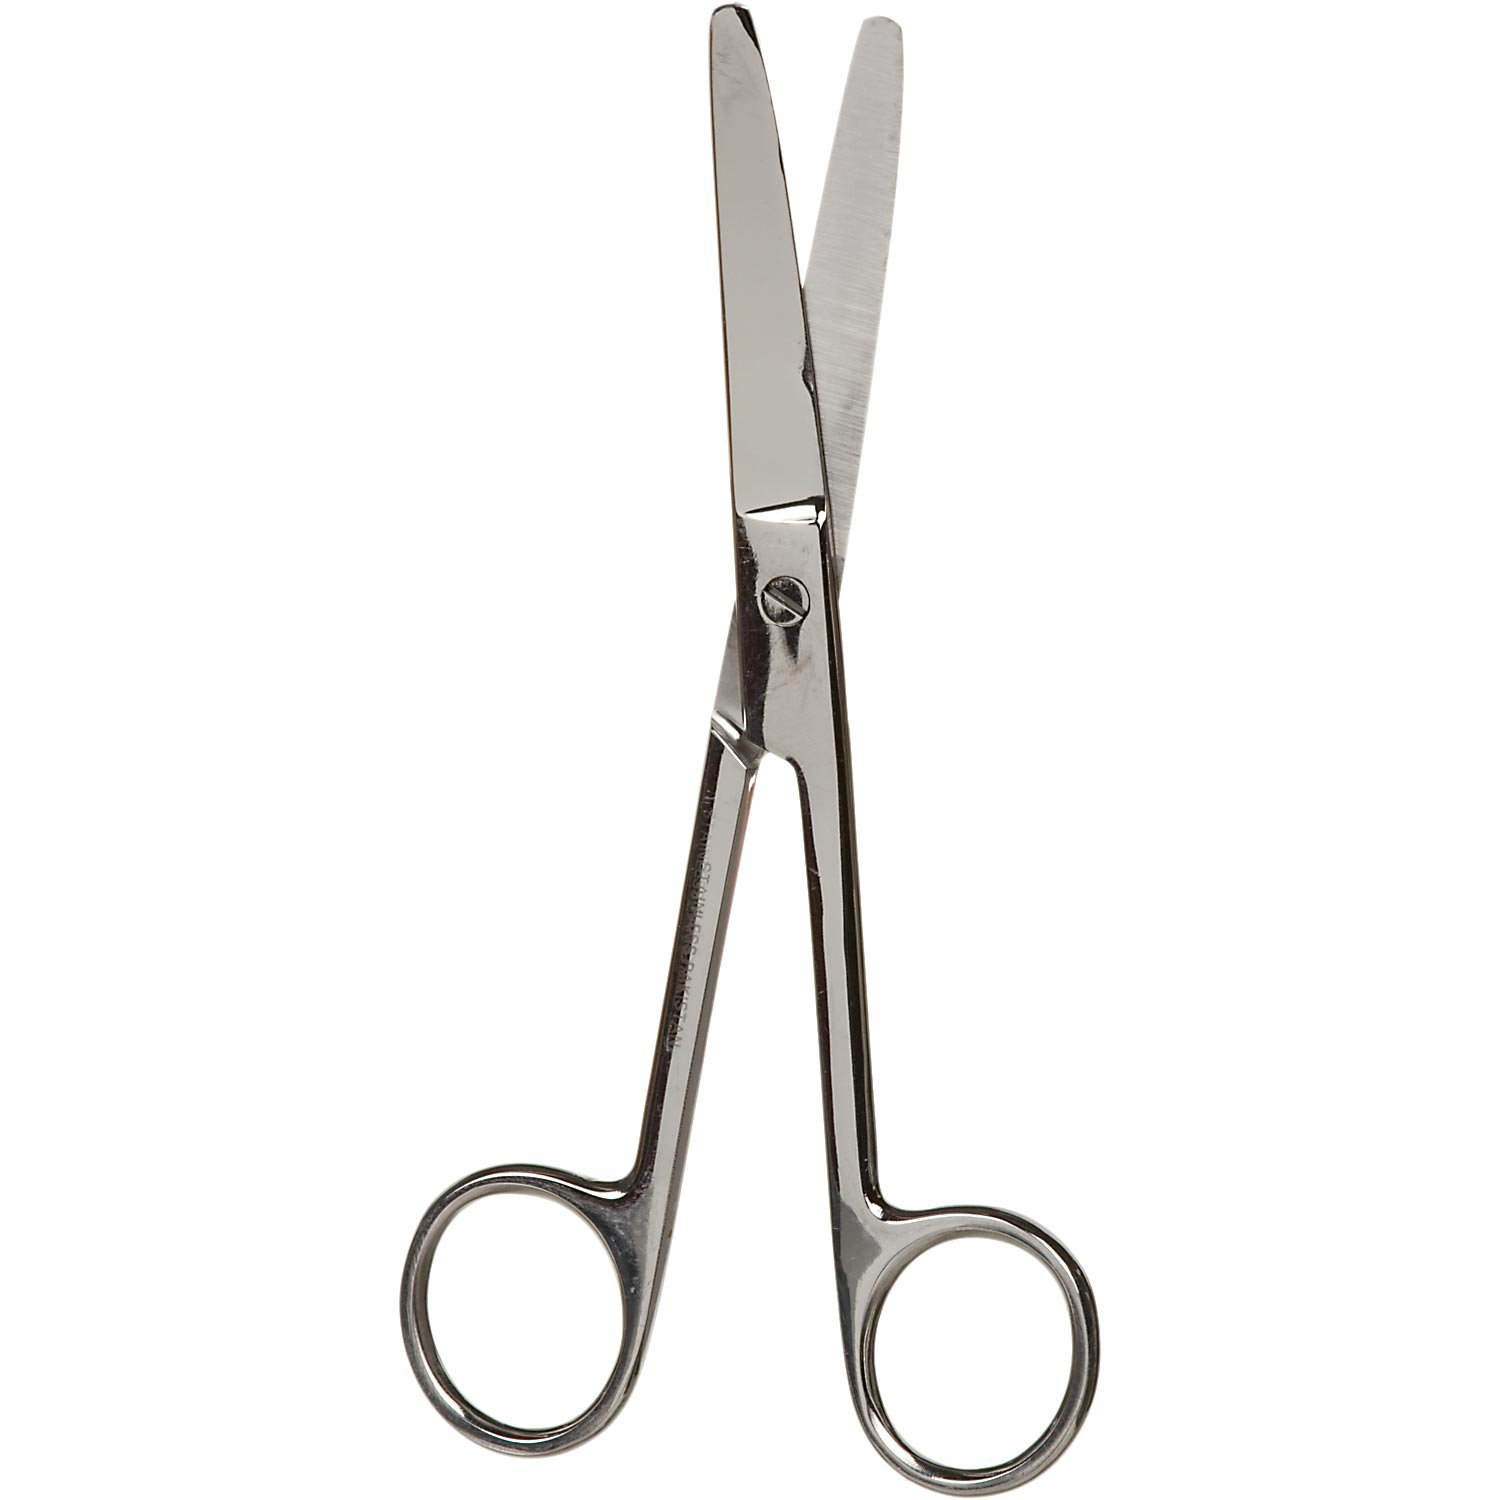 Millers Forge Curved Blade Pet Grooming Scissors